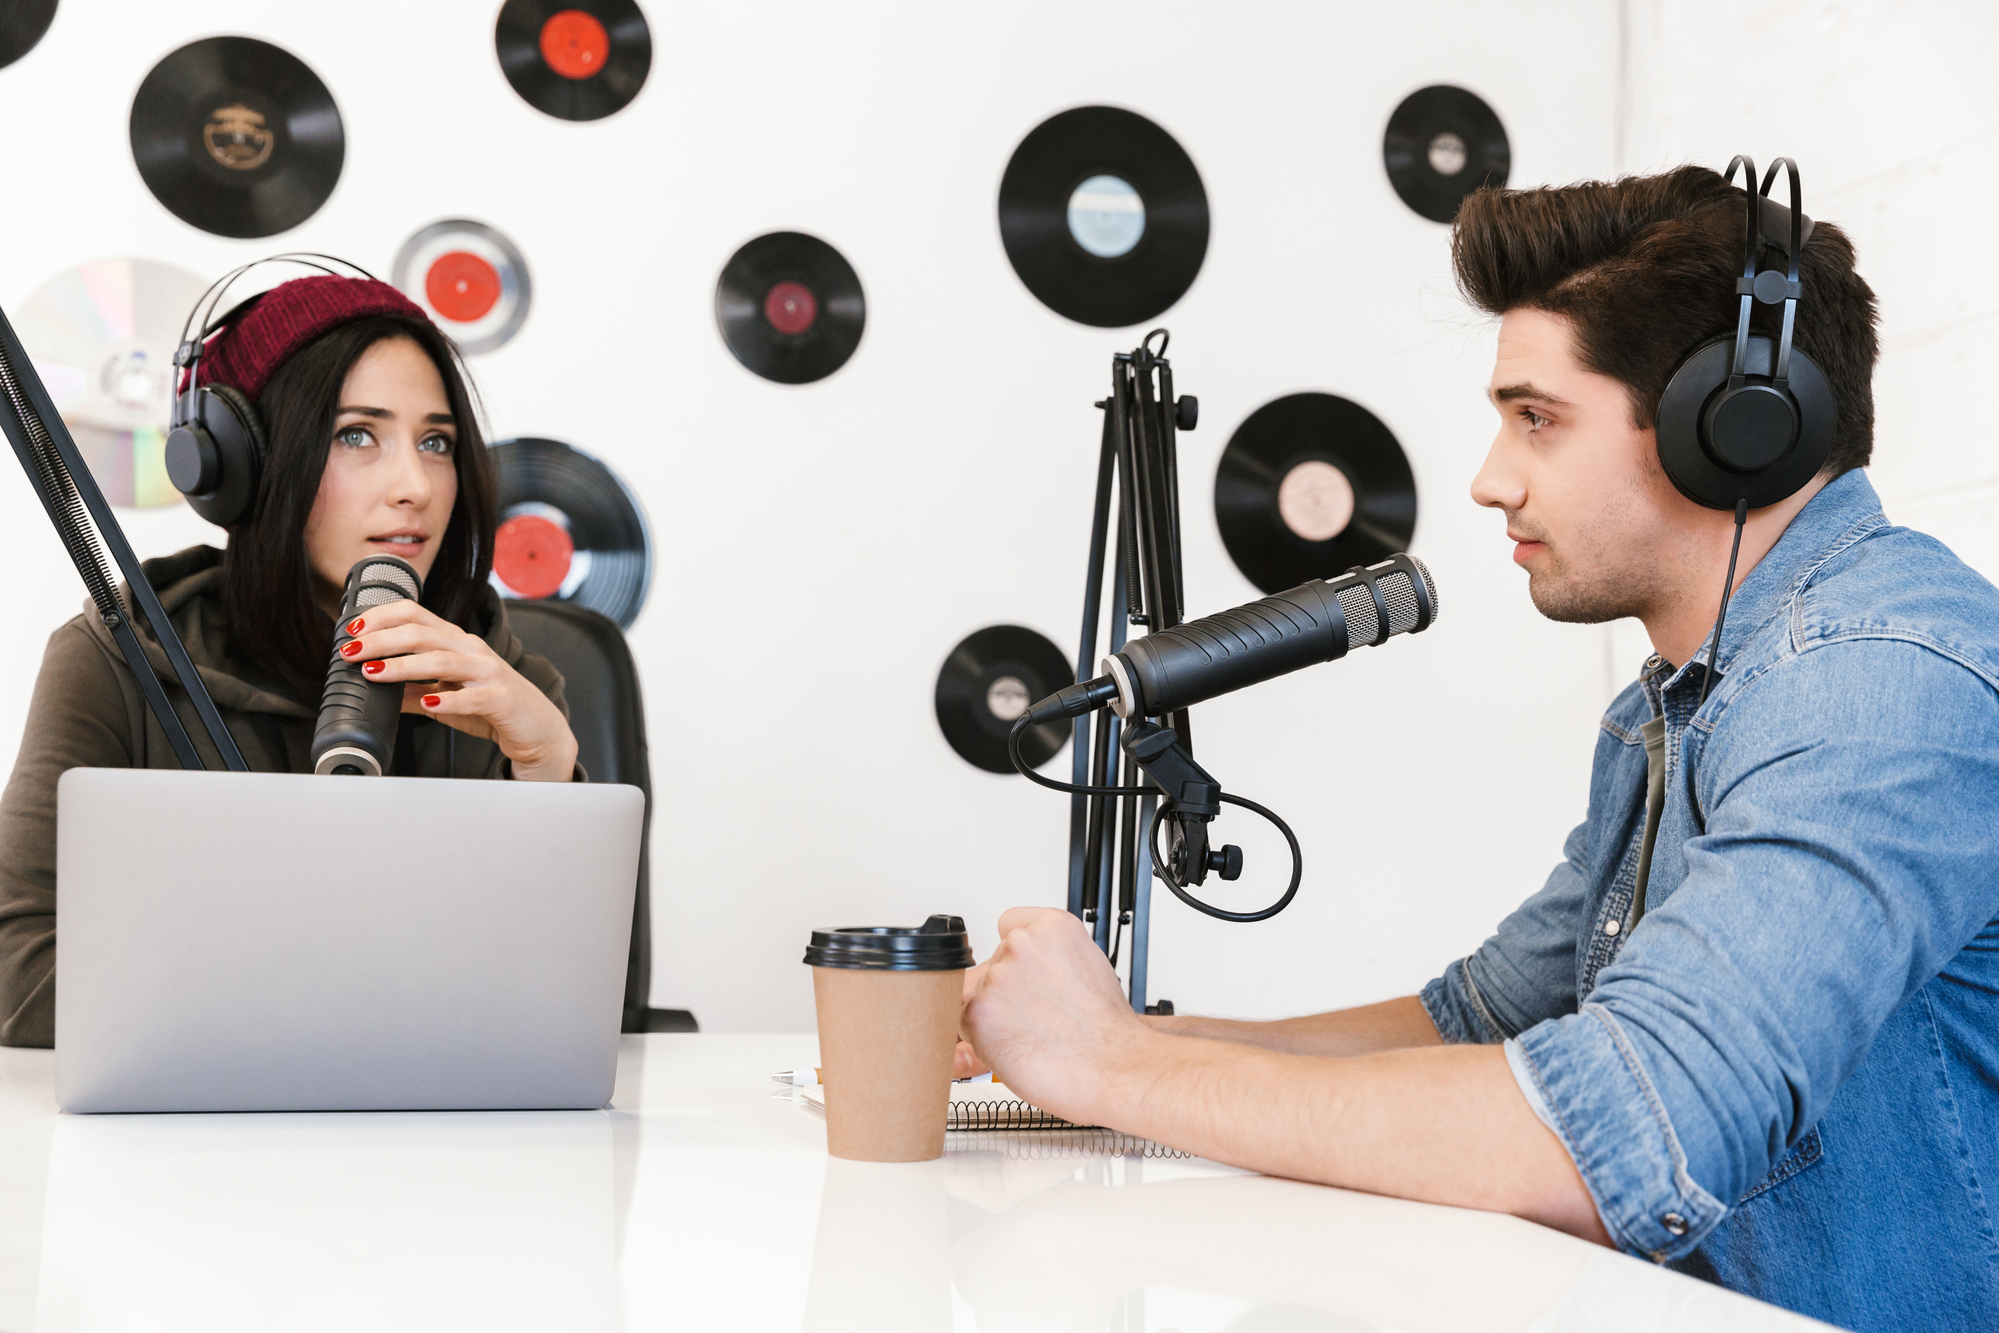 Podcast Advertising: What Is It, Does Your Brand Need It, and How Much Does It Cost?